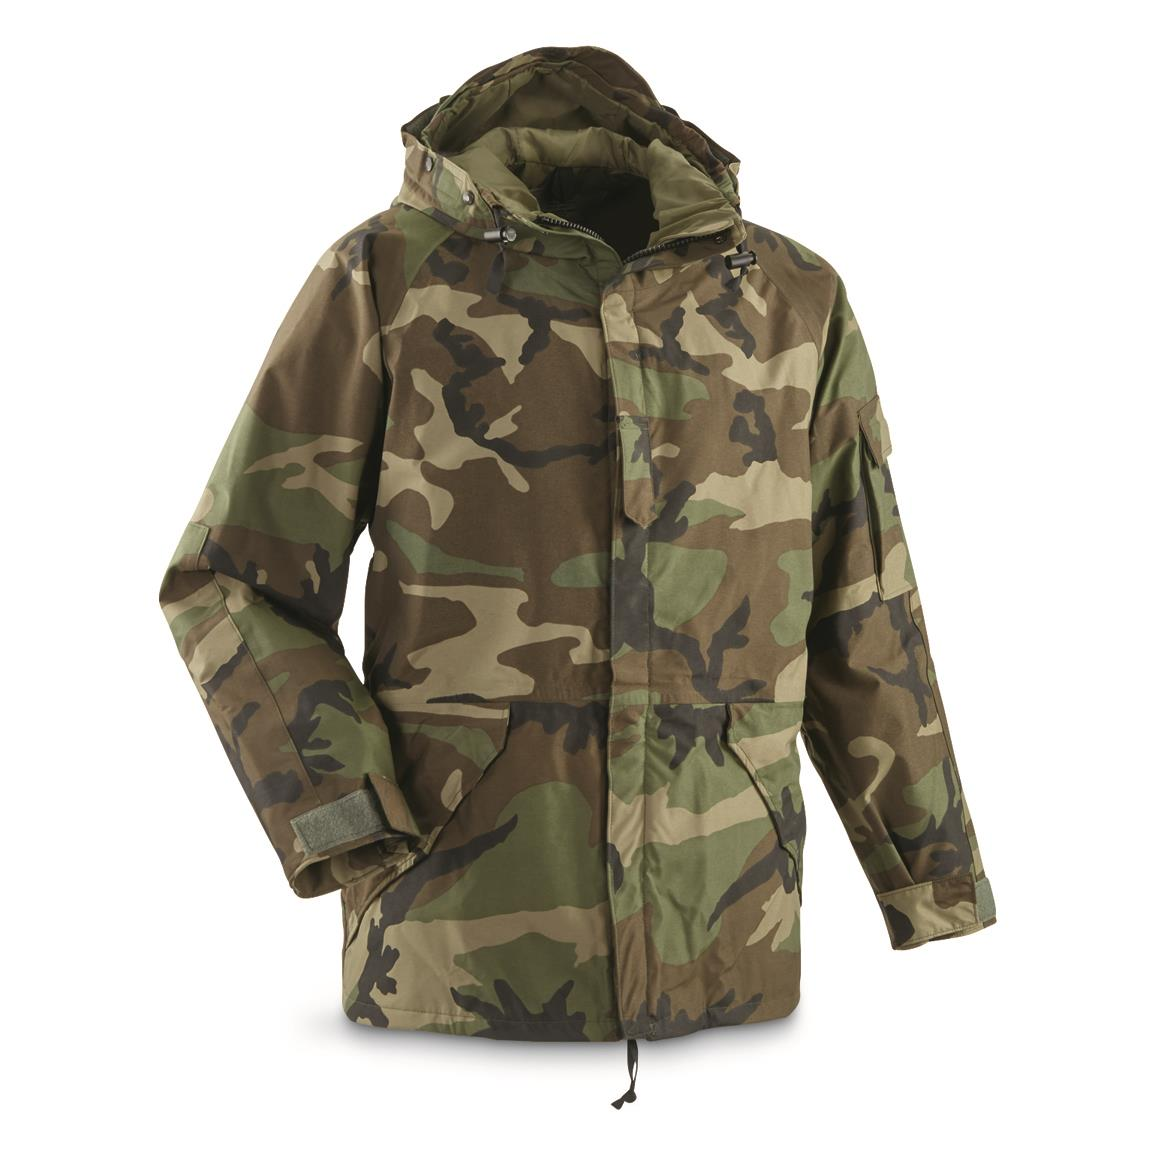 U.S. Military Surplus GORE-TEX Parka, New - 703207, Rain Gear ...